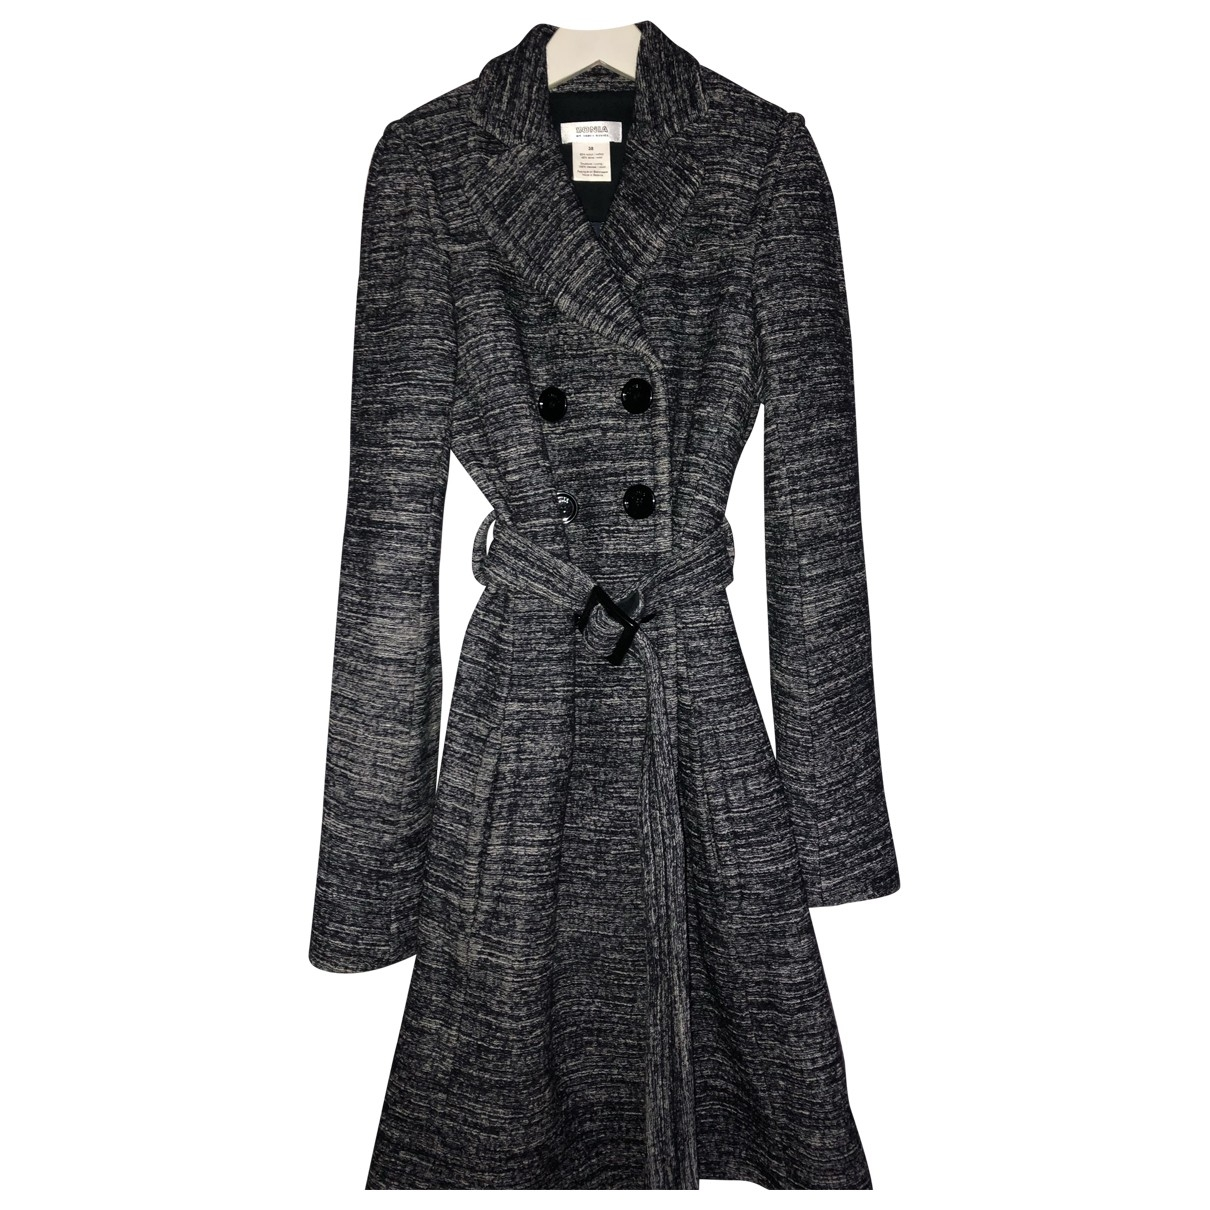 Sonia By Sonia Rykiel \N Anthracite Cotton coat for Women 38 FR